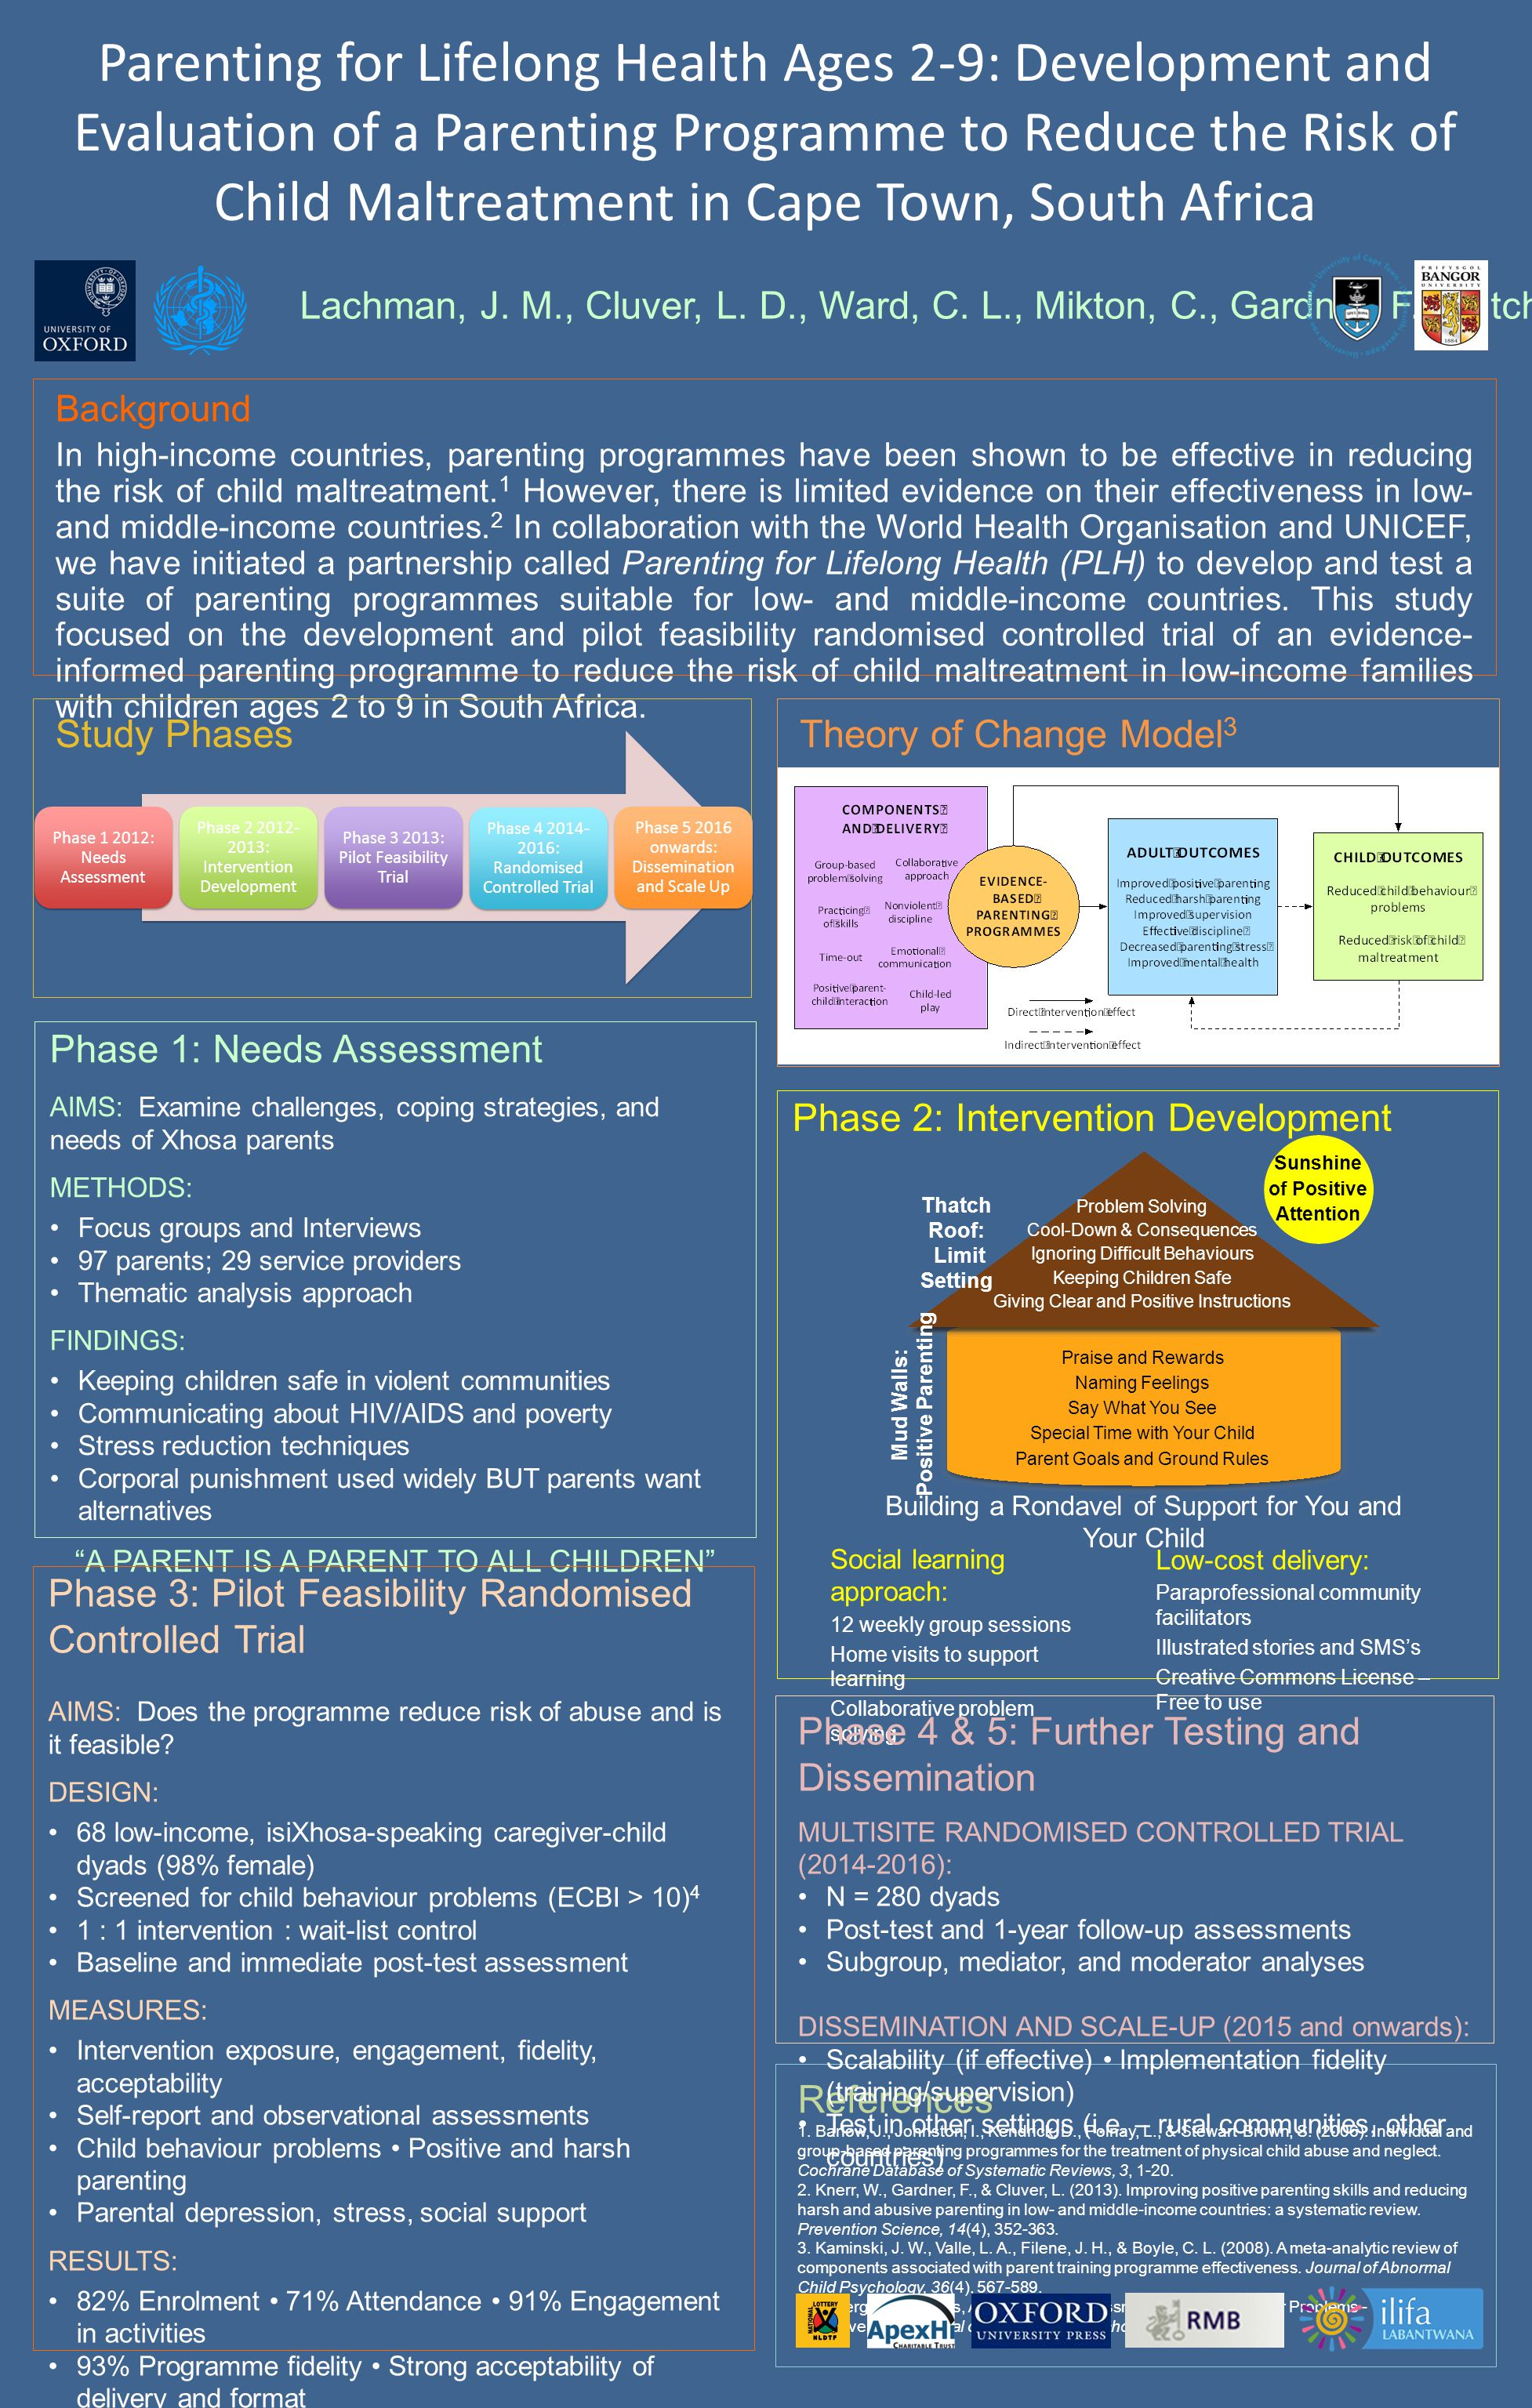 Phase 2: Intervention Development Parenting for Lifelong Health Ages 2-9: Development and Evaluation of a Parenting Programme to Reduce the Risk of Child Maltreatment in Cape Town, South Africa Background In high-income countries, parenting programmes have been shown to be effective in reducing the risk of child maltreatment.